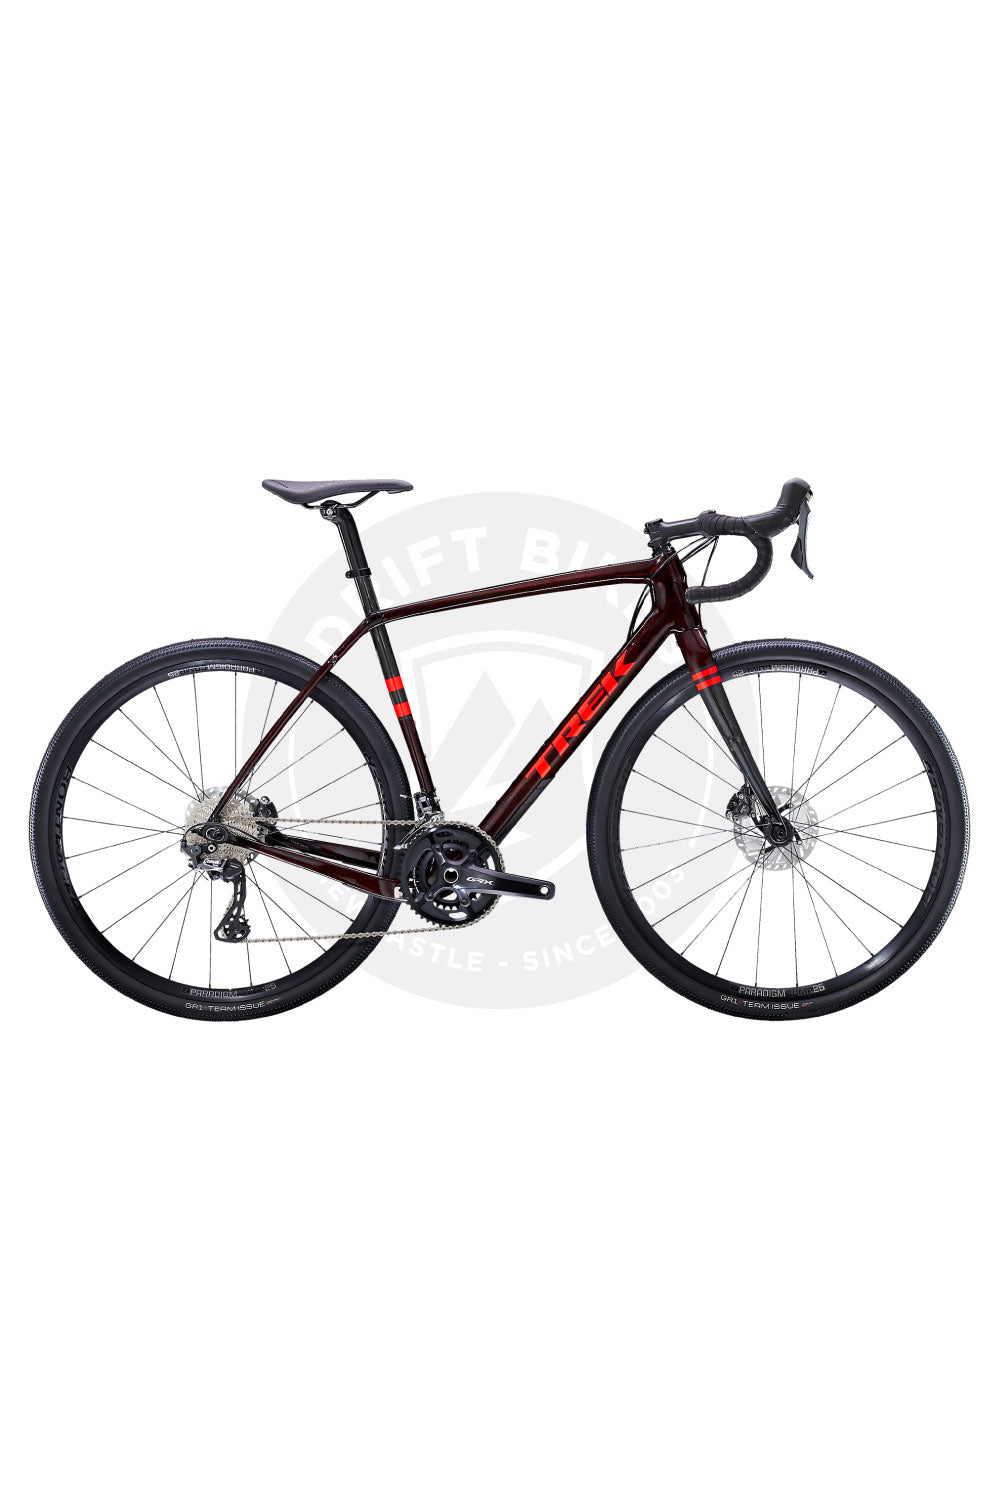 TREK 2021 Checkpoint SL 6 Road Adventure Bike